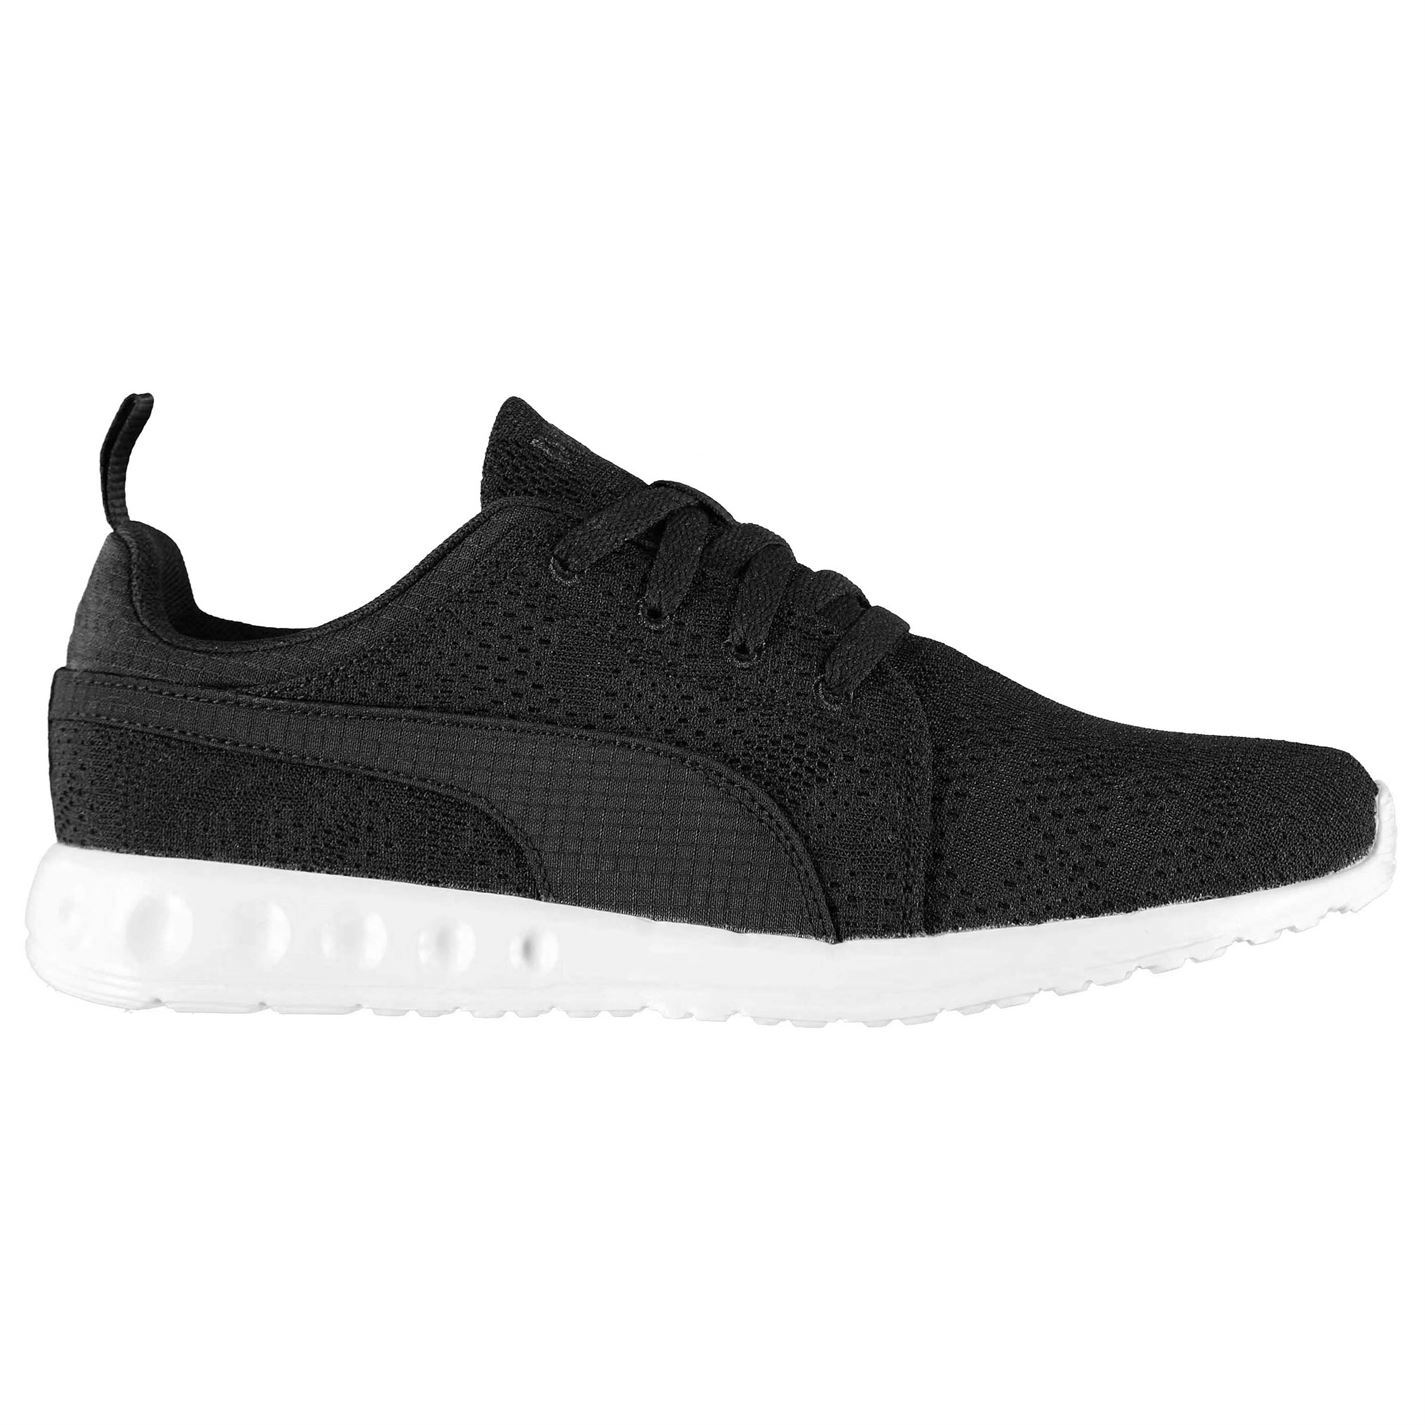 a1ba1277869 ... Puma Carson Running Shoes Mens Black White Jogging Trainers Sneakers ...